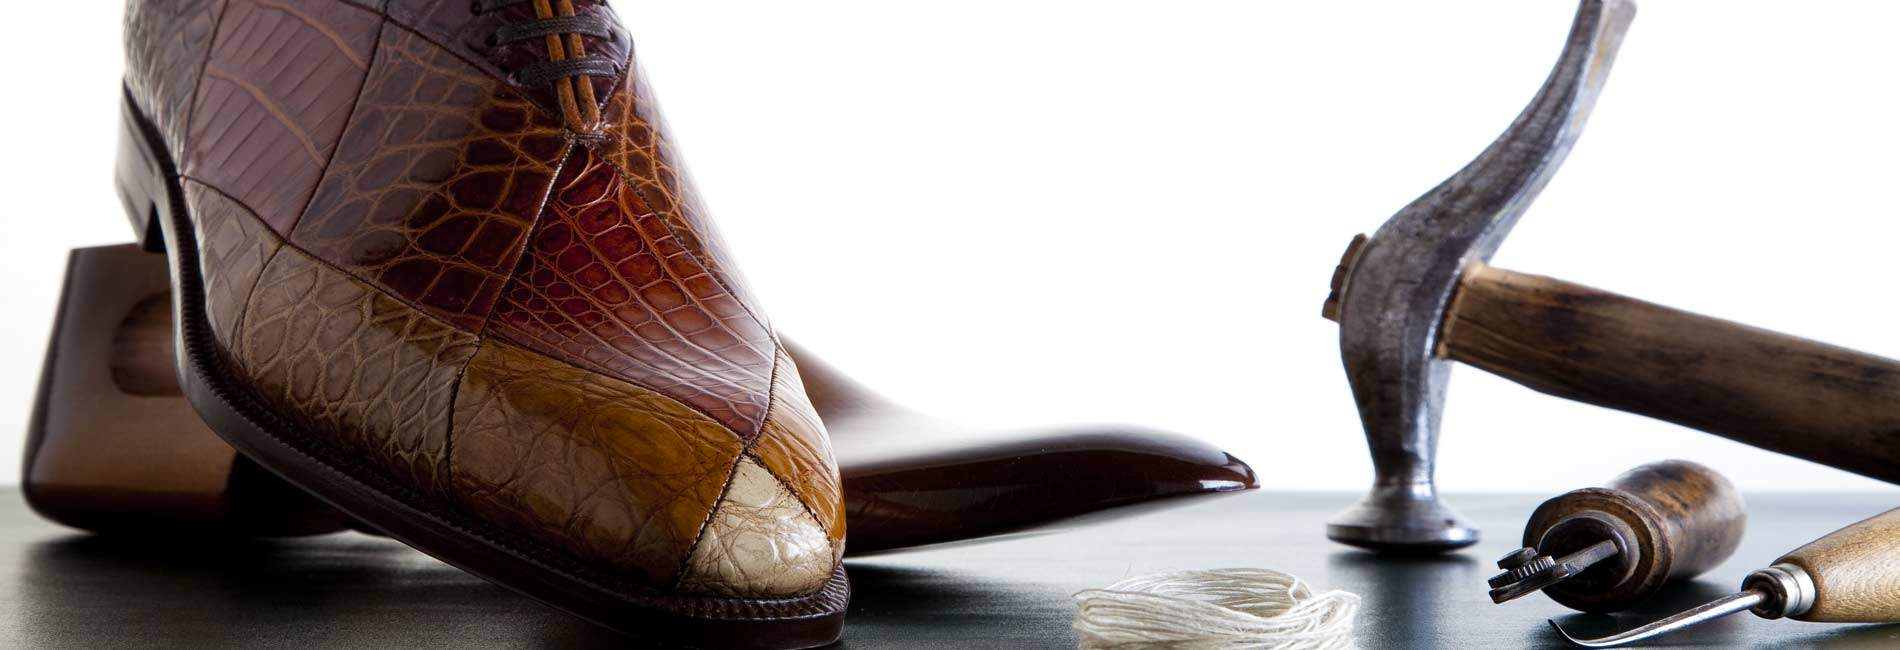 Only the best leather for our handmade shoes